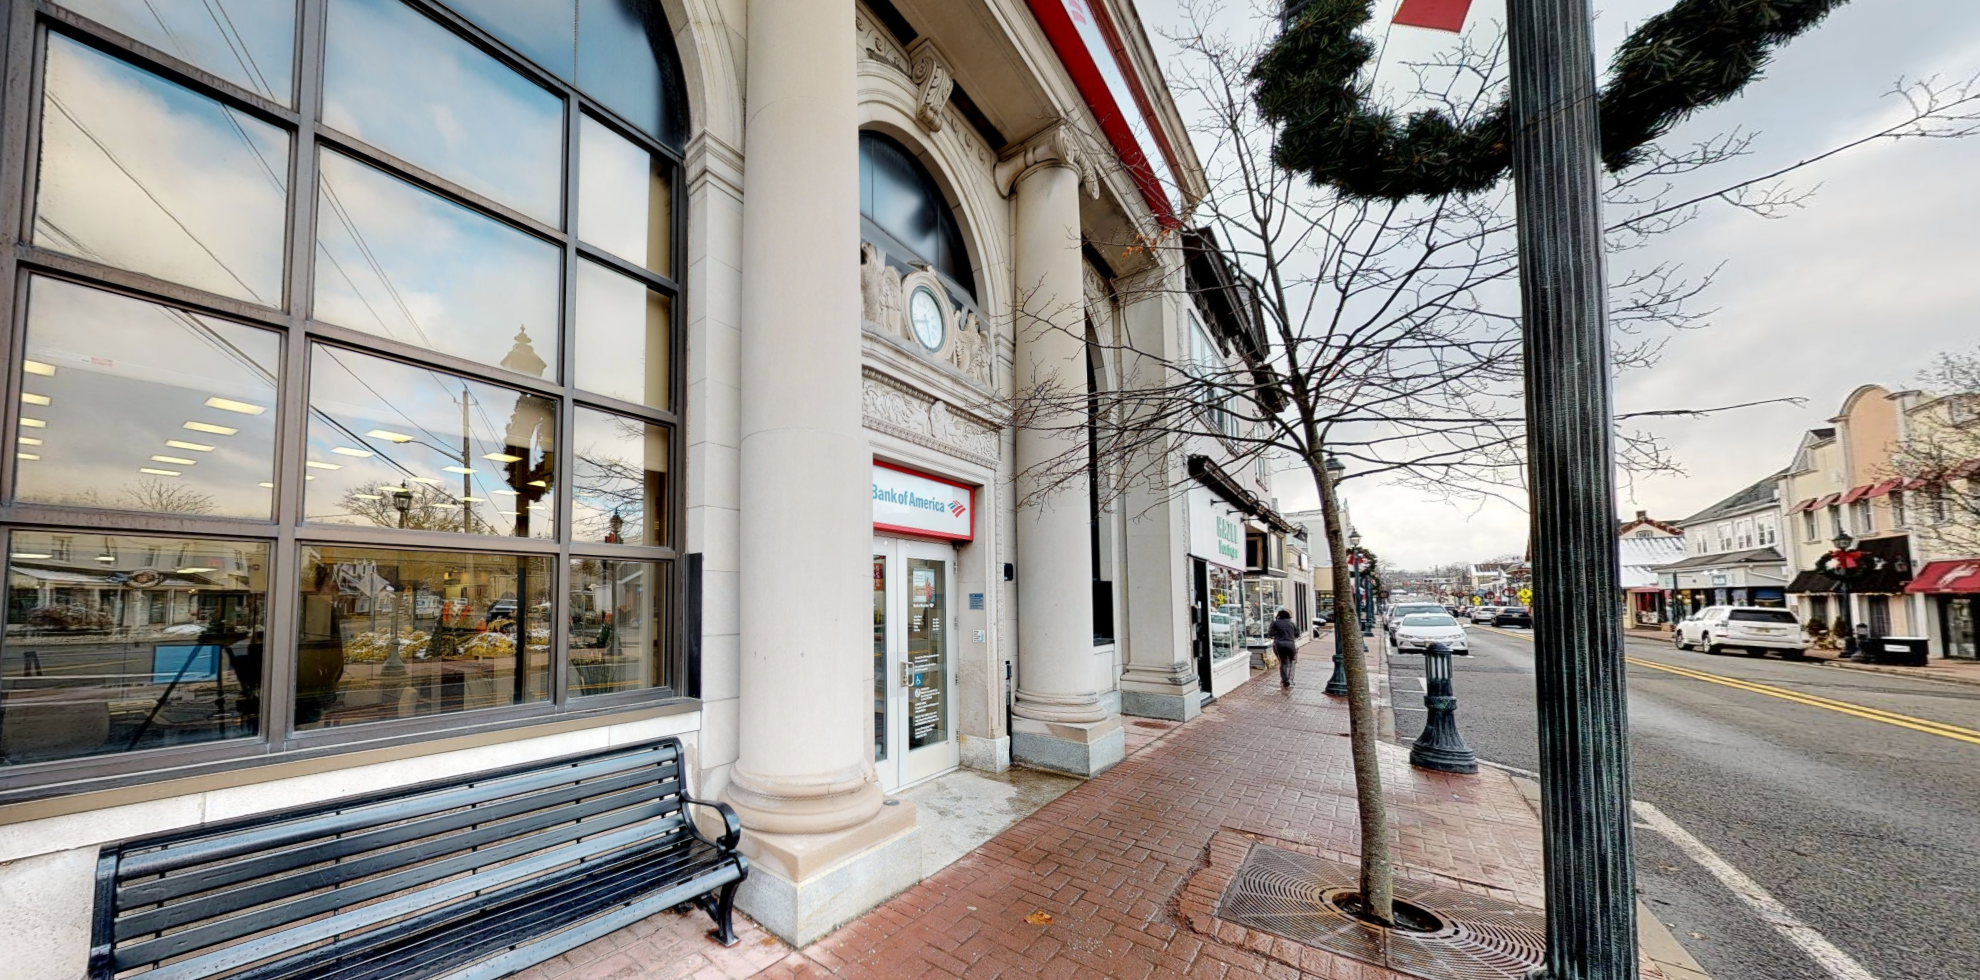 Bank of America financial center with drive-thru ATM   76 E Main St, Ramsey, NJ 07446